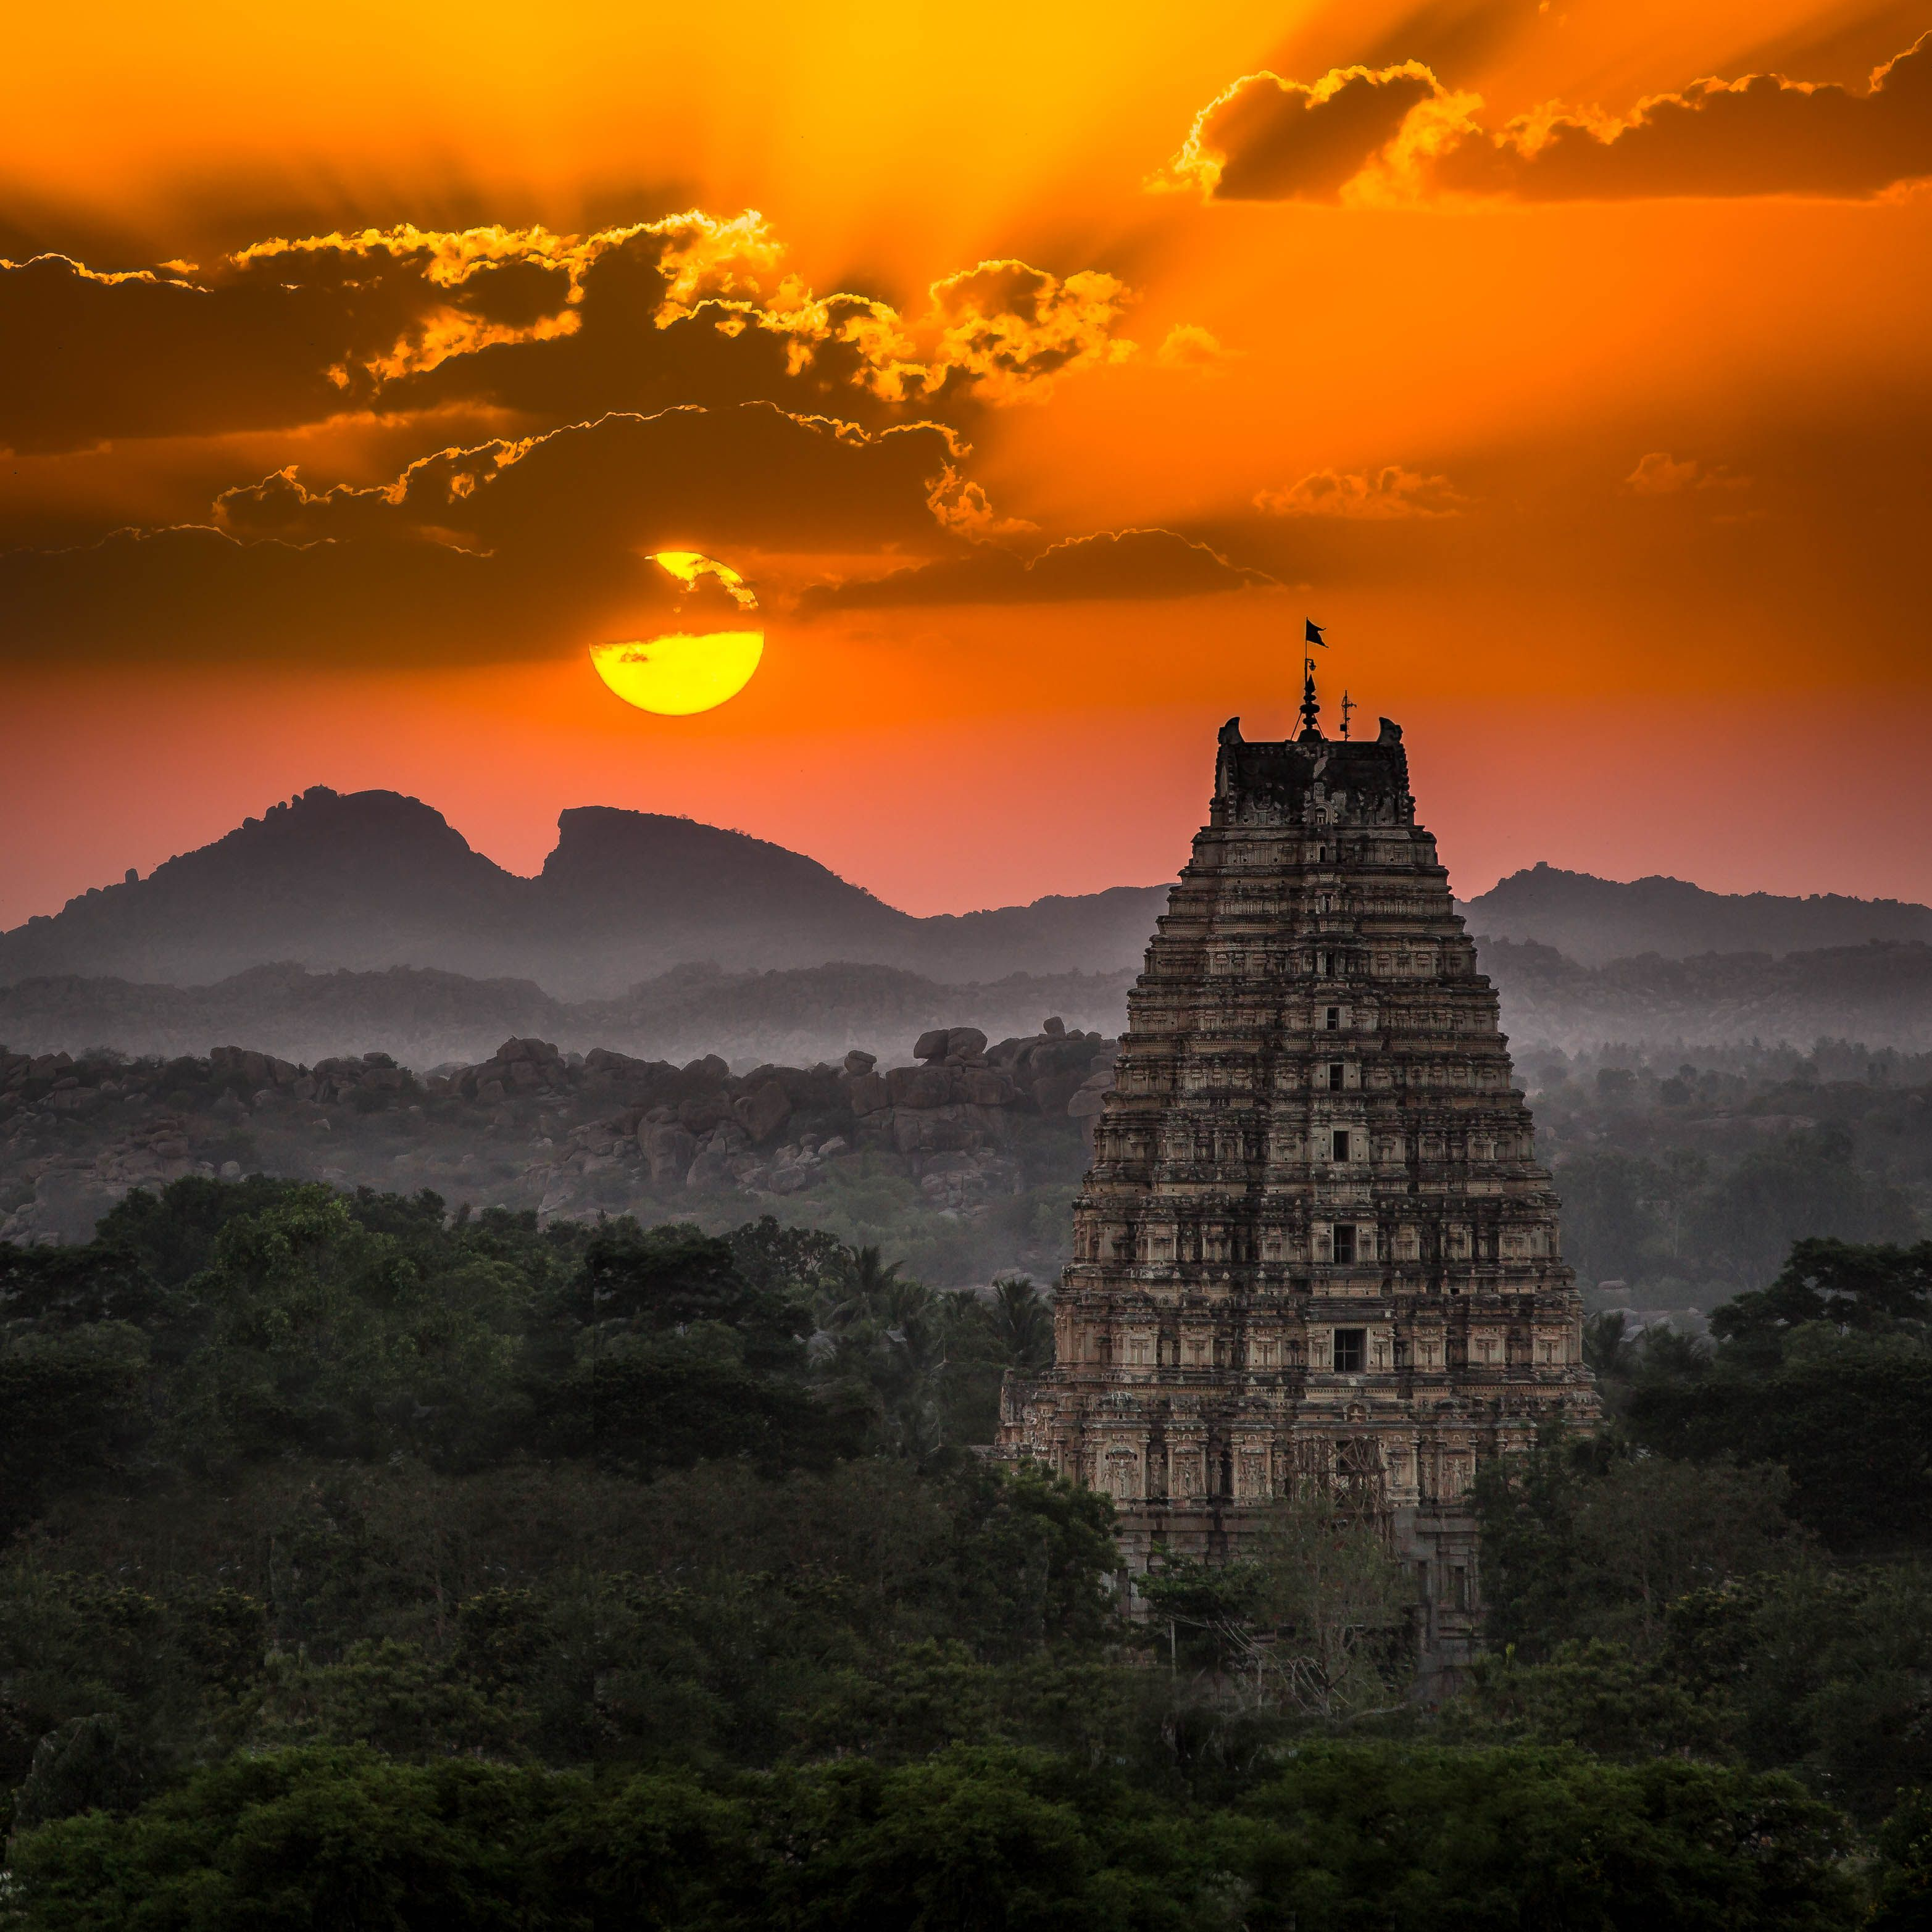 Sunset in Hampi, India. One of my favourite places visited